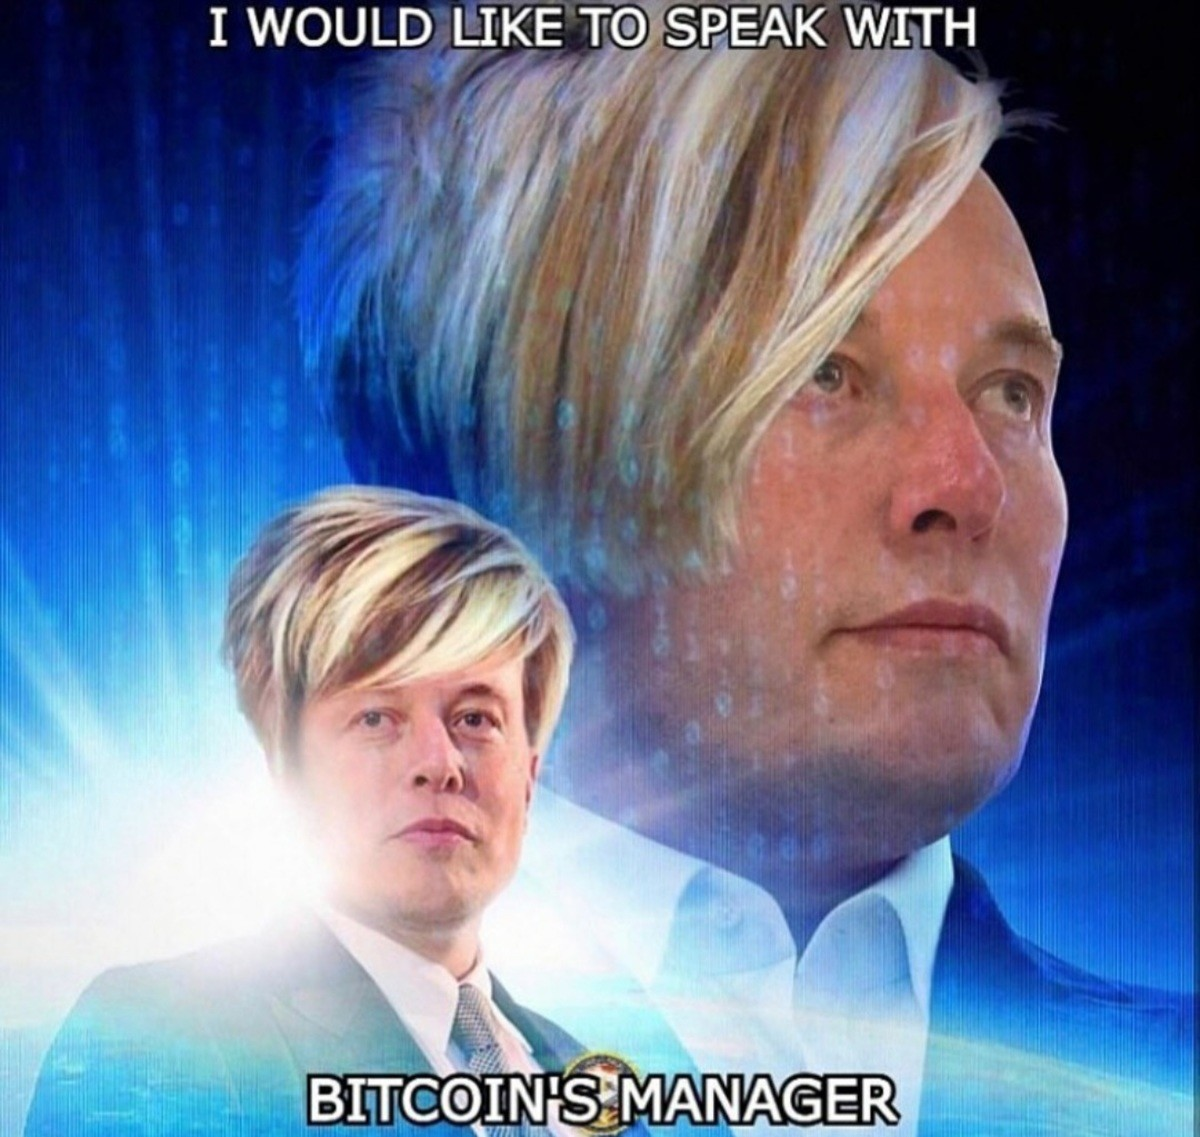 draconian Commies. .. you Elon. It was all fun and games when you were posting doge, but now you crashed Bitcoin. You cunt.